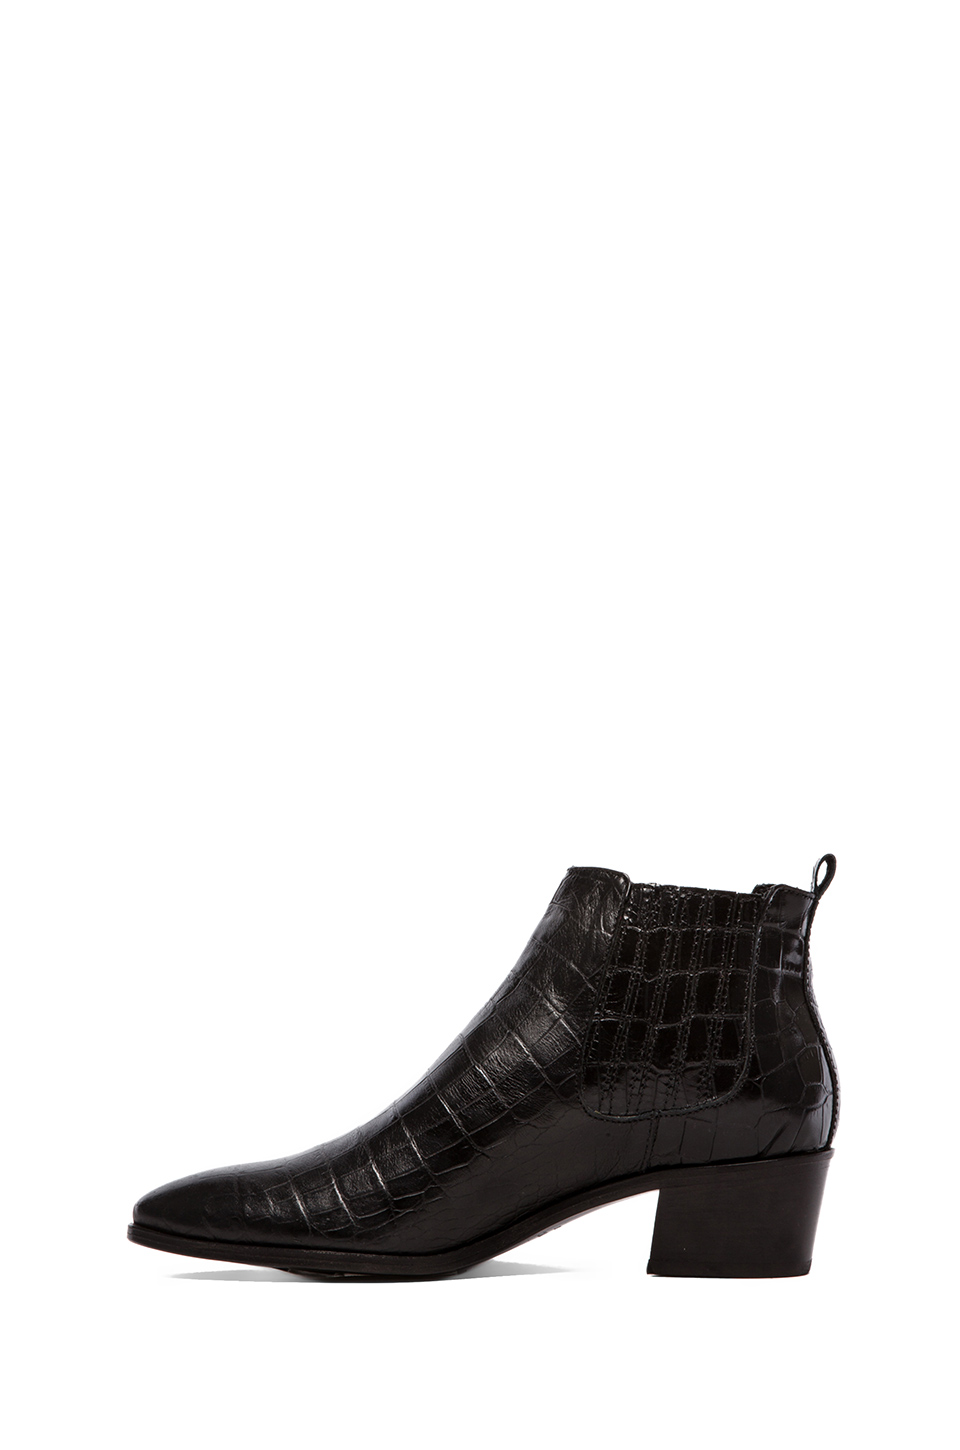 MODERN VICE COLLECTION Handler Bootie in Black Embossed Croc | REVOLVE